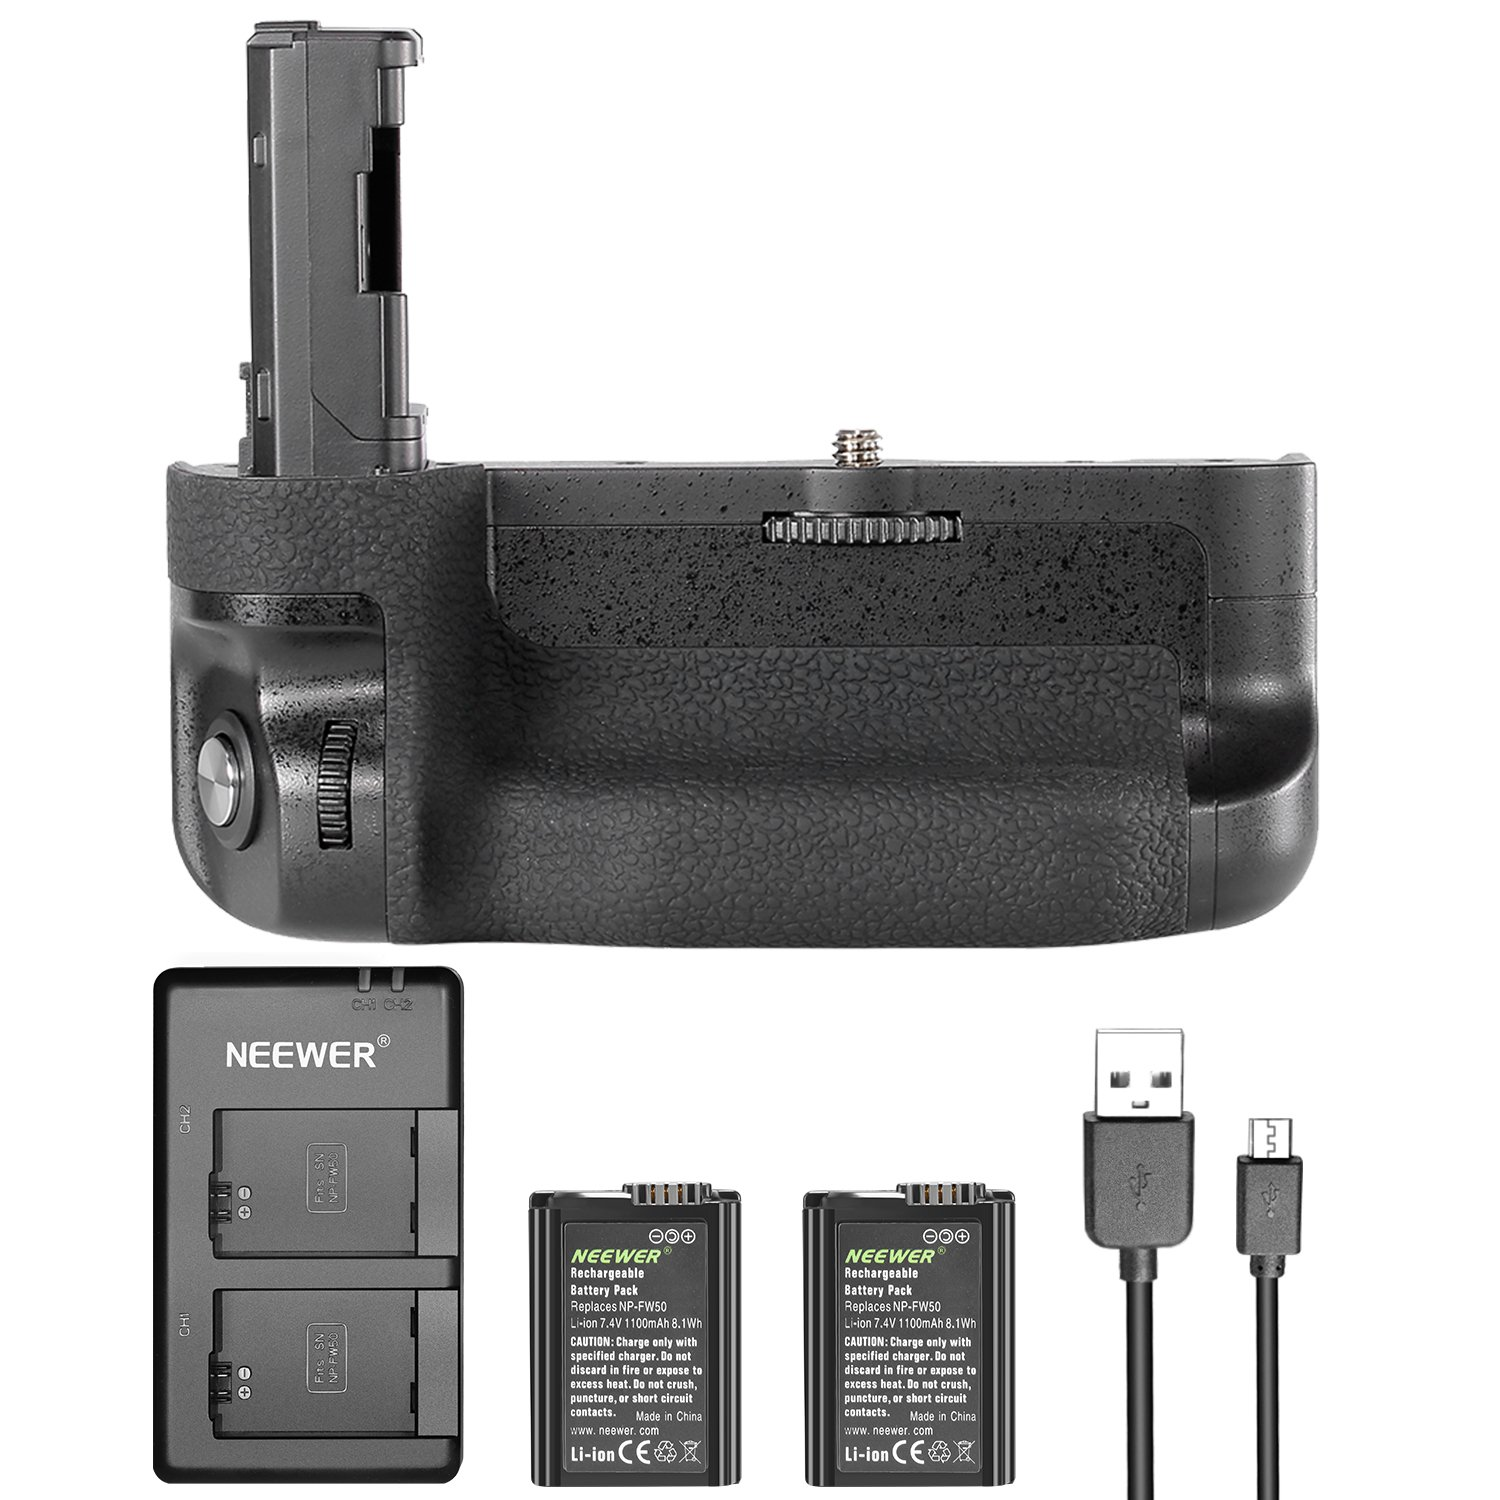 Neewer Vertical Battery Grip Kit for Sony A7 II A7R II, Includes VG-C2EM Replacement Battery Grip(Without Remote Control), 2 Pieces 1100mAh FW50 Replacement Li-ion Batteries and Dual Charger 90089824@@##1